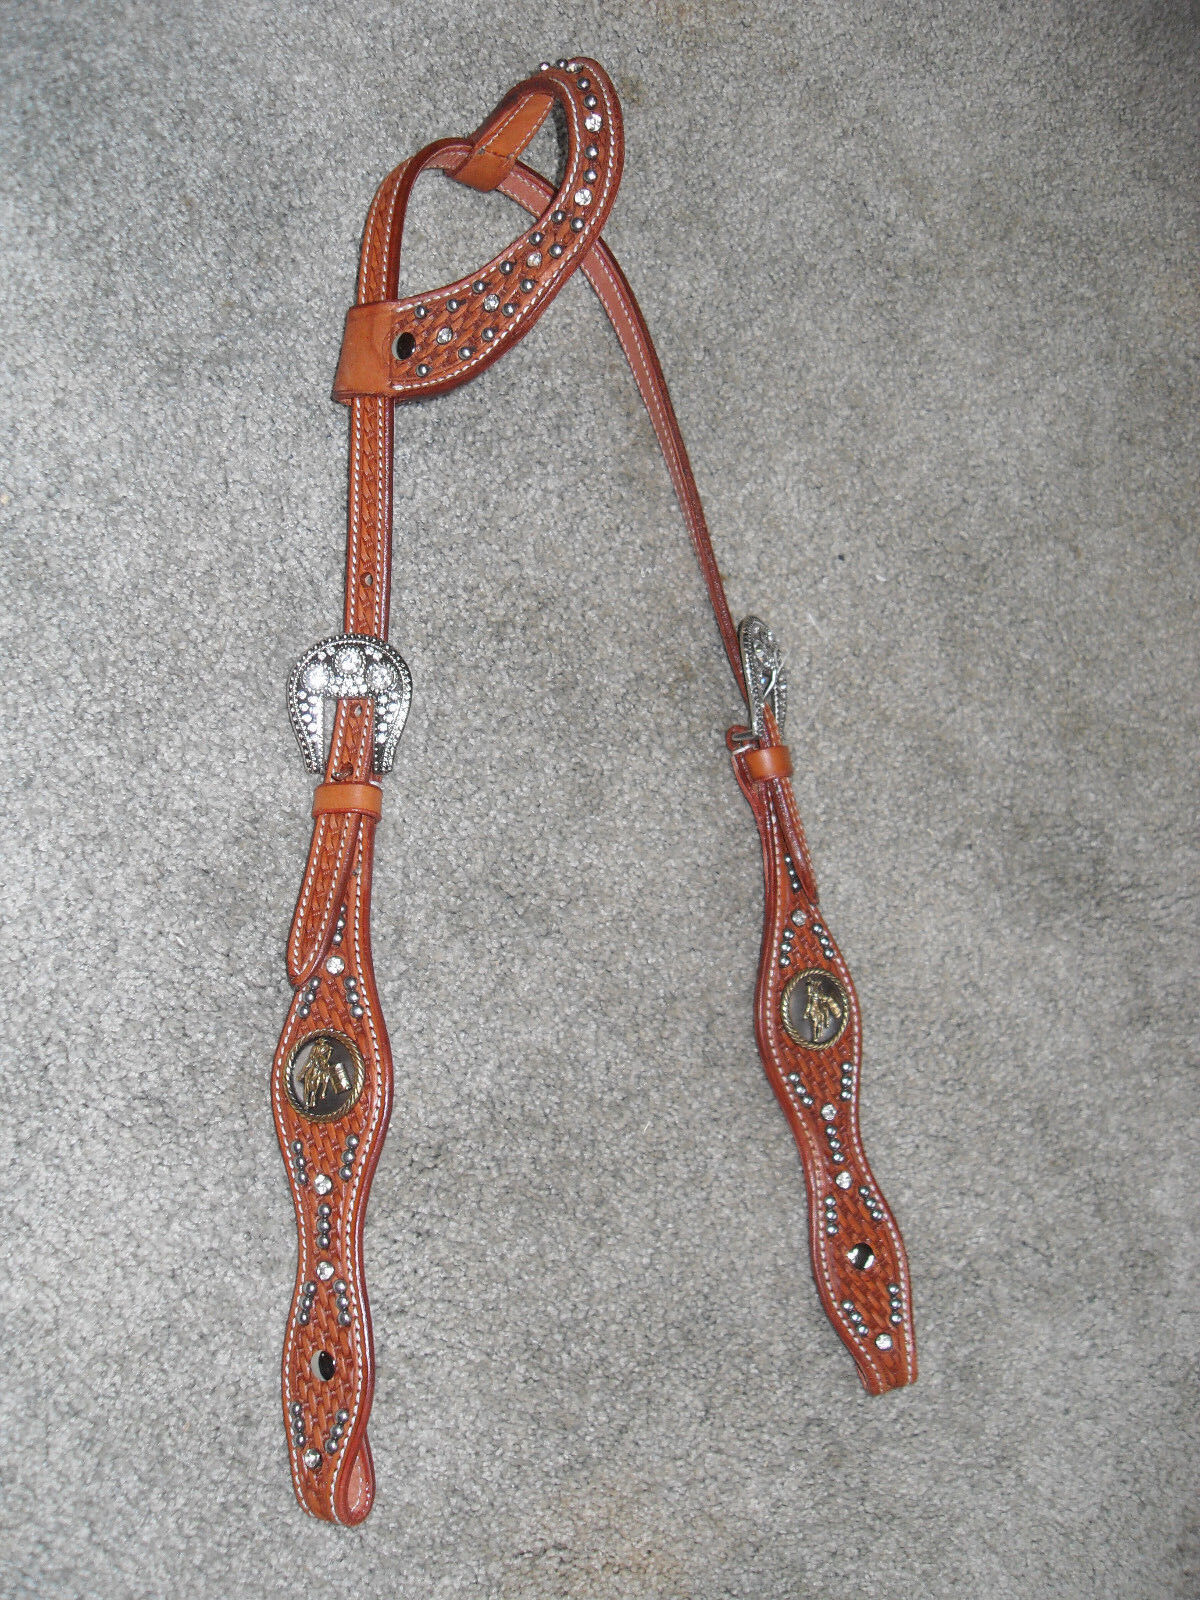 WESTERN HEADSTALL   BRIDLE MED OIL LEATHER W   CLEAR CRYSTALS & BARREL RACER  save 35% - 70% off